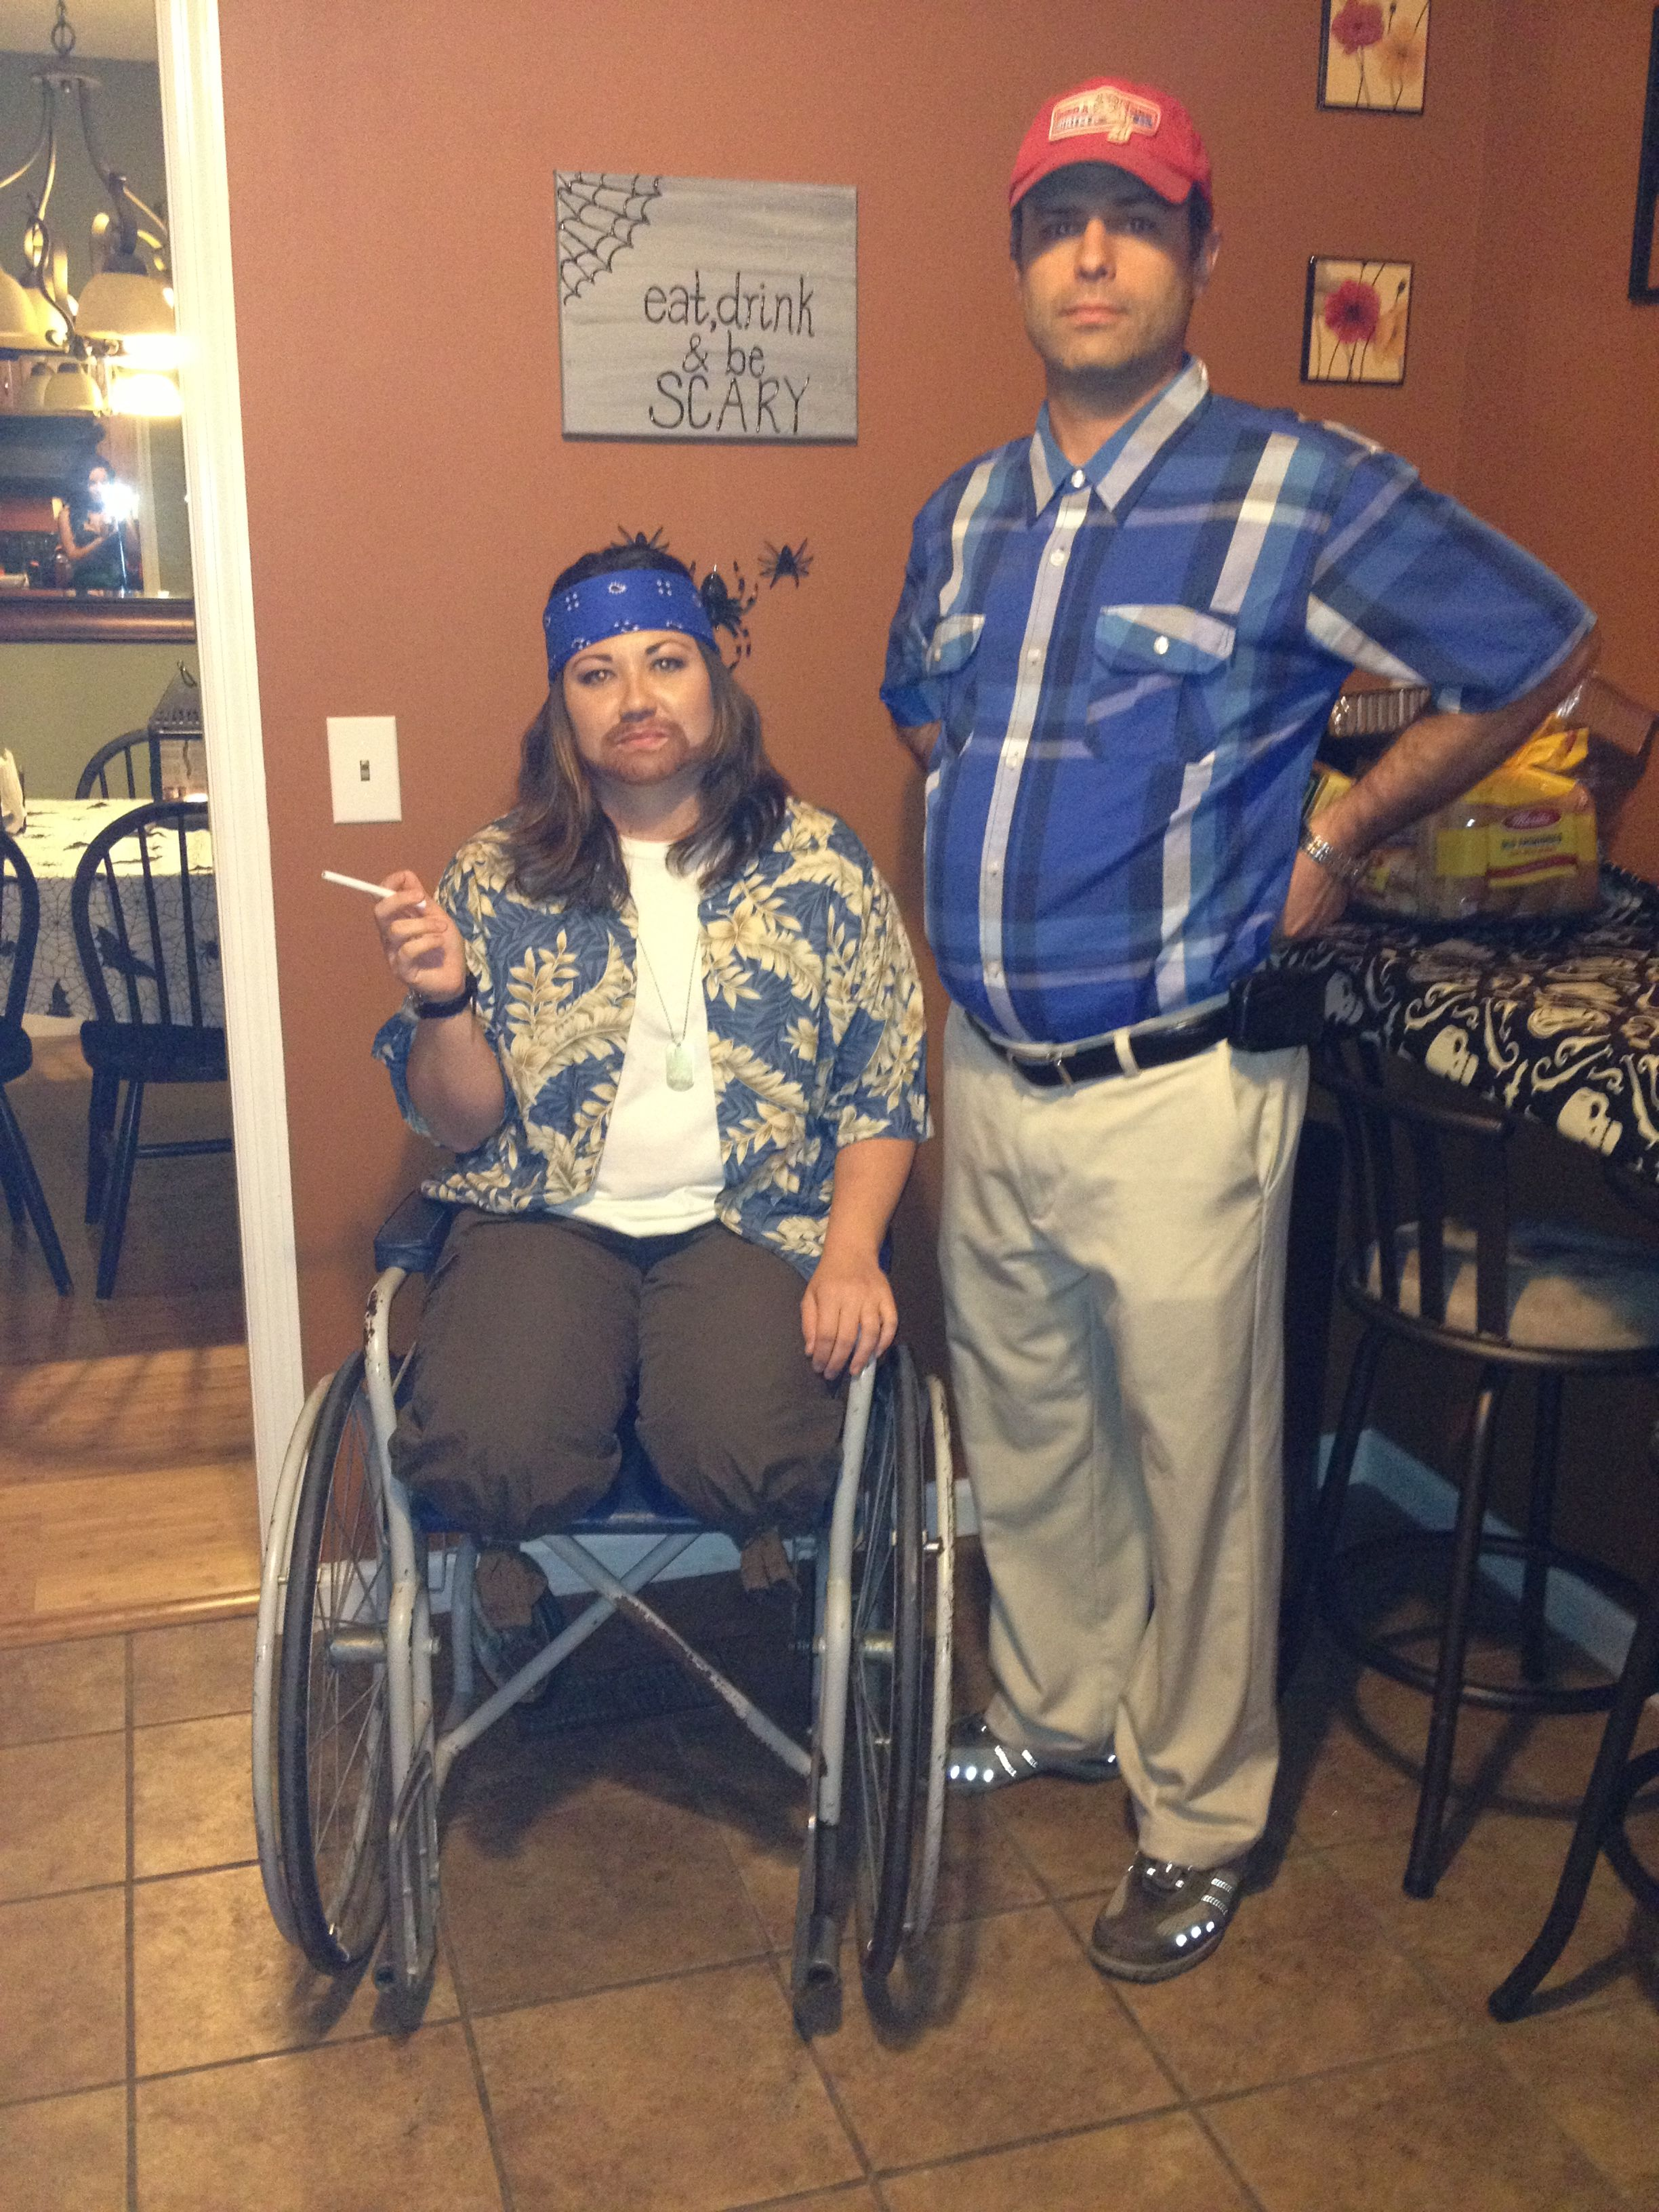 Funny Couples Halloween Costume A Little Bit Of